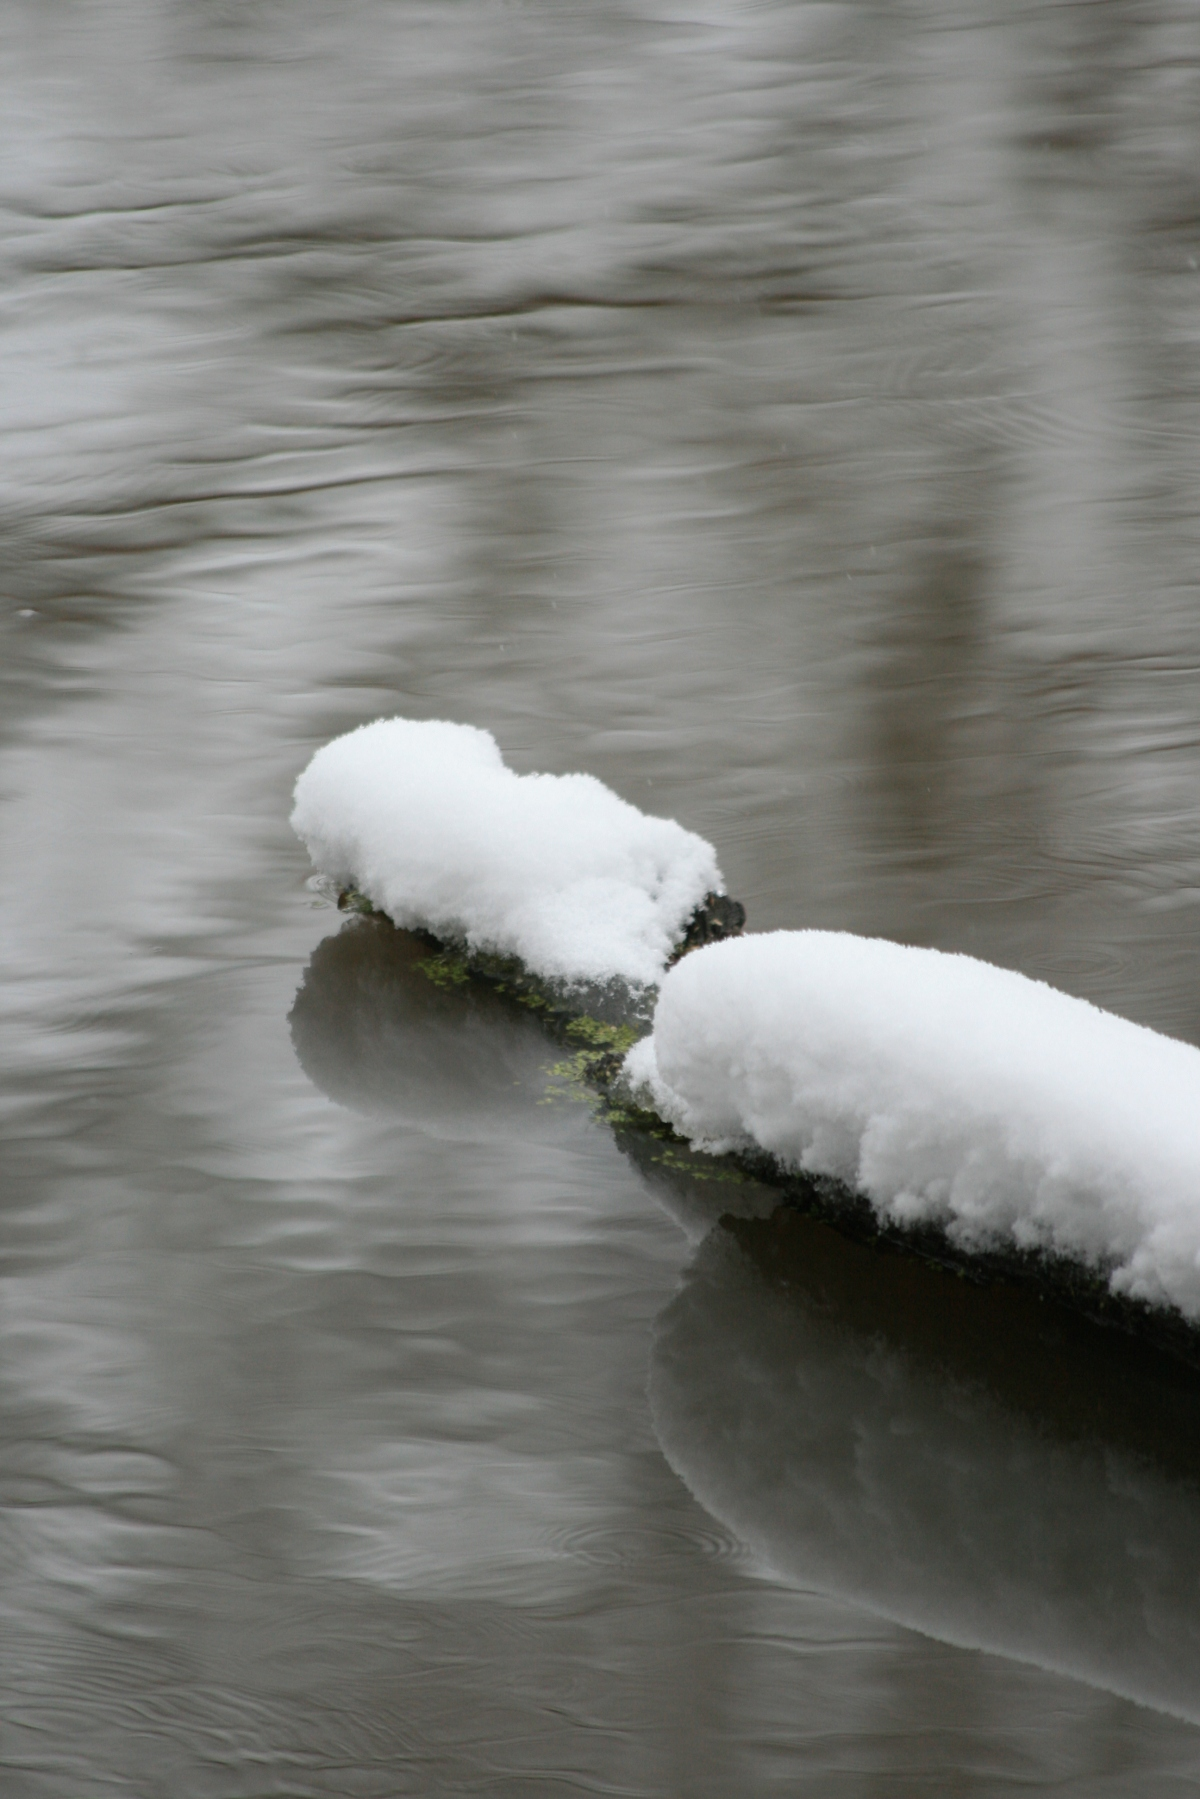 Snow and Water